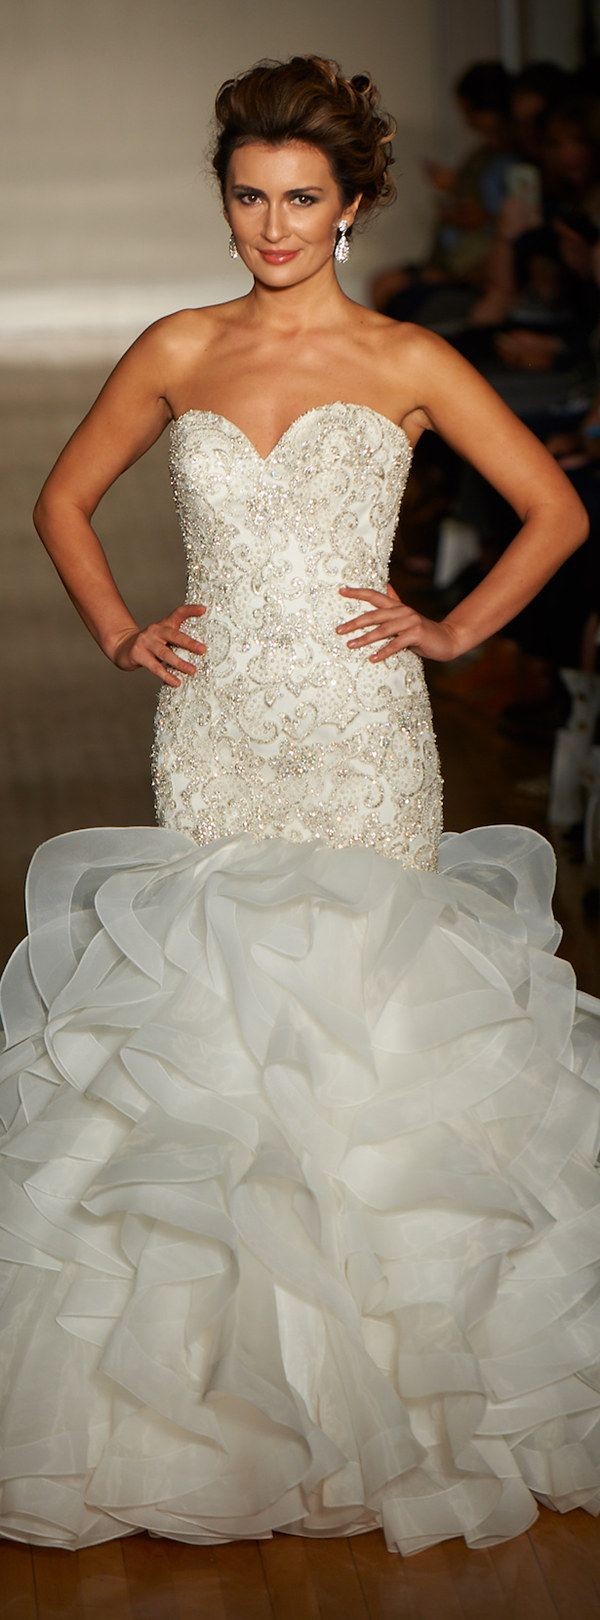 Wedding Dresses Kearney Ne : Best ideas about allure wedding gowns on